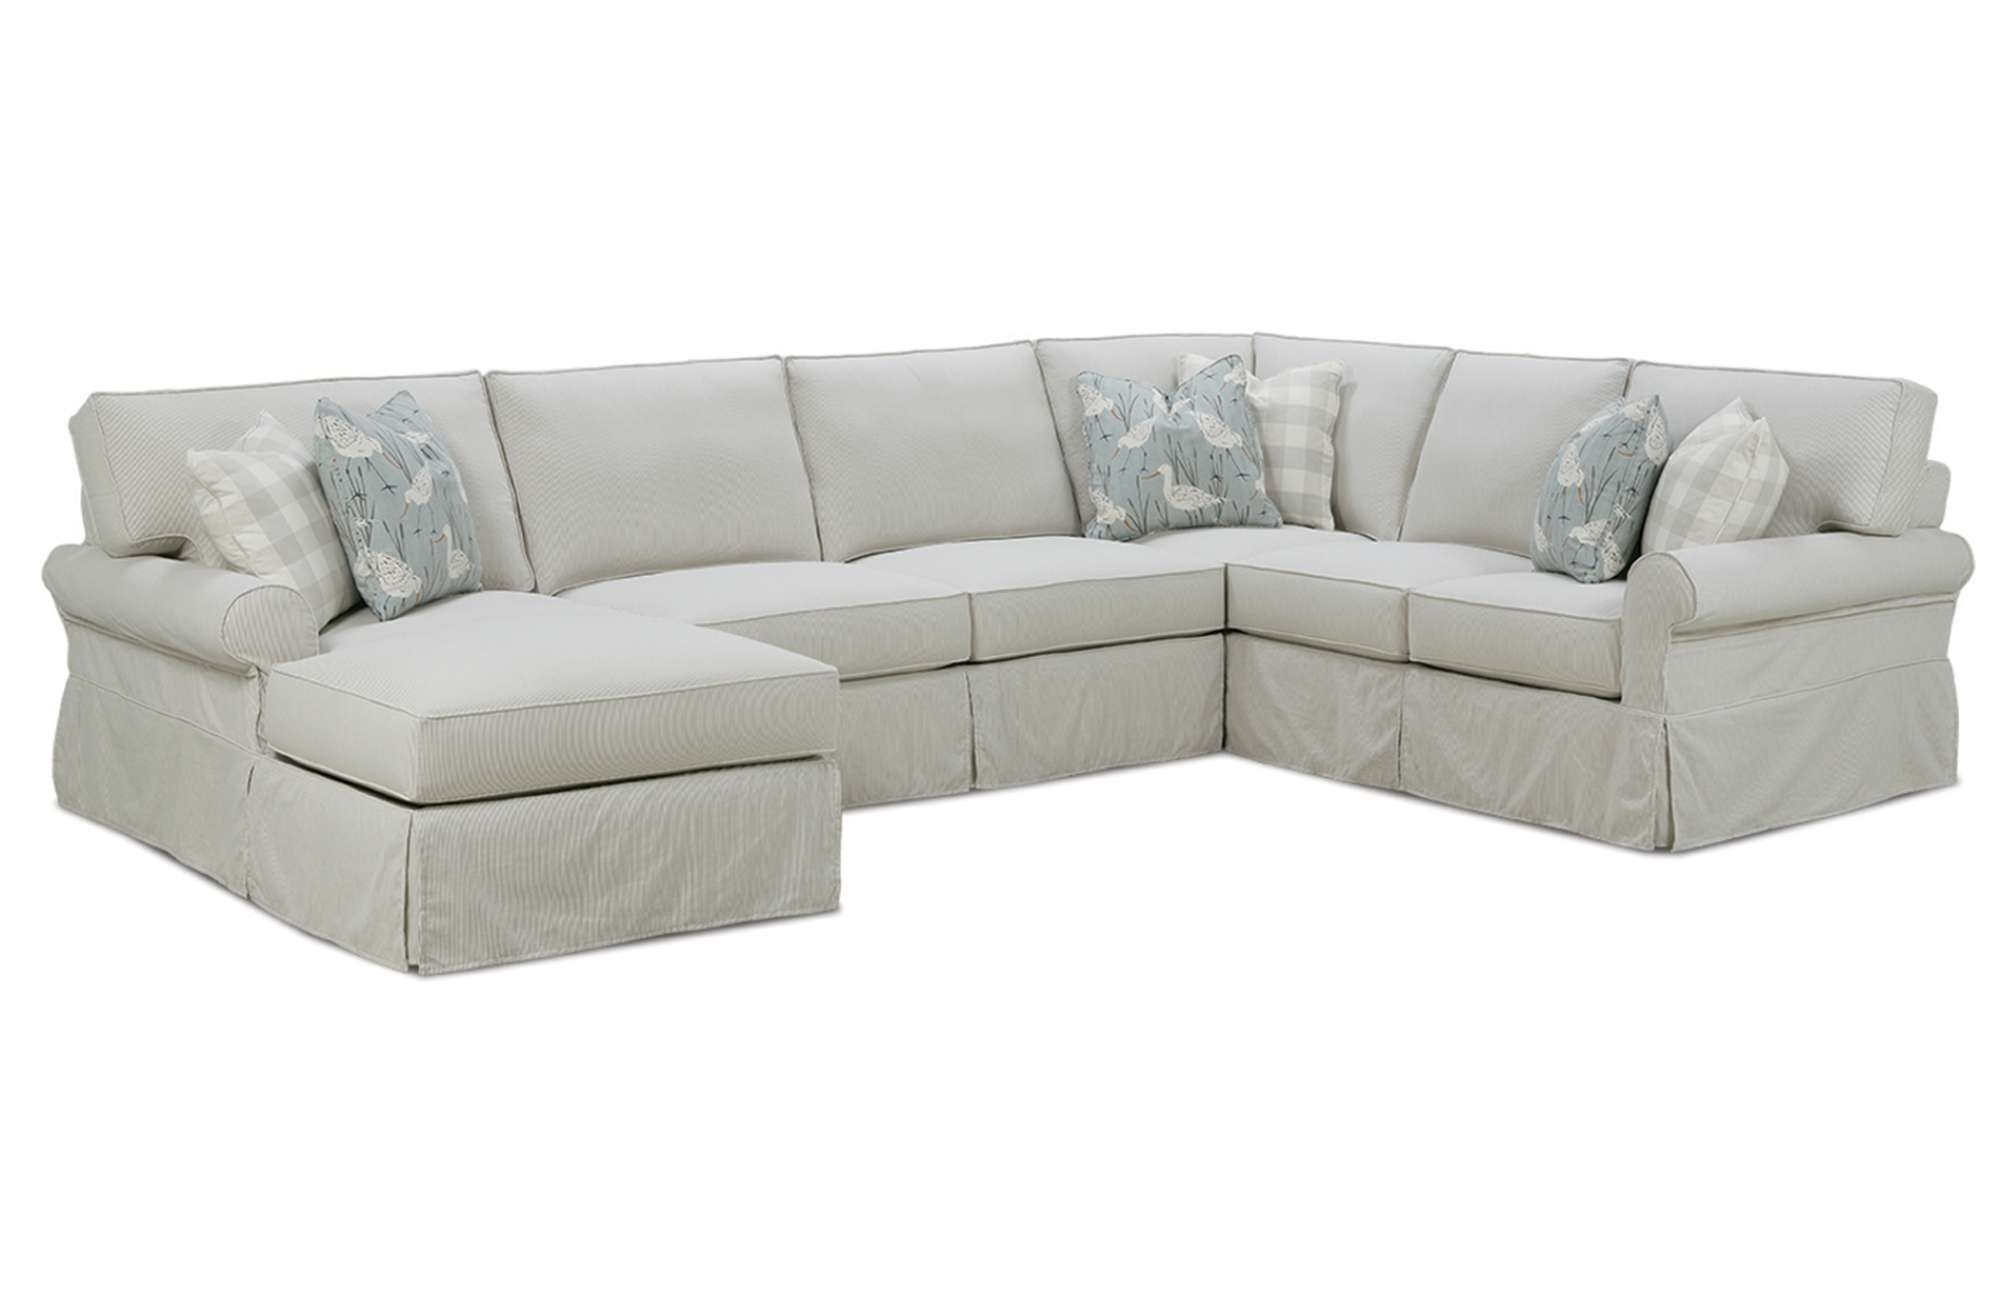 Well Liked Easton Slipcover Sectionalrowe Furniture Inside Slipcover Sectional Sofas With Chaise (View 7 of 15)